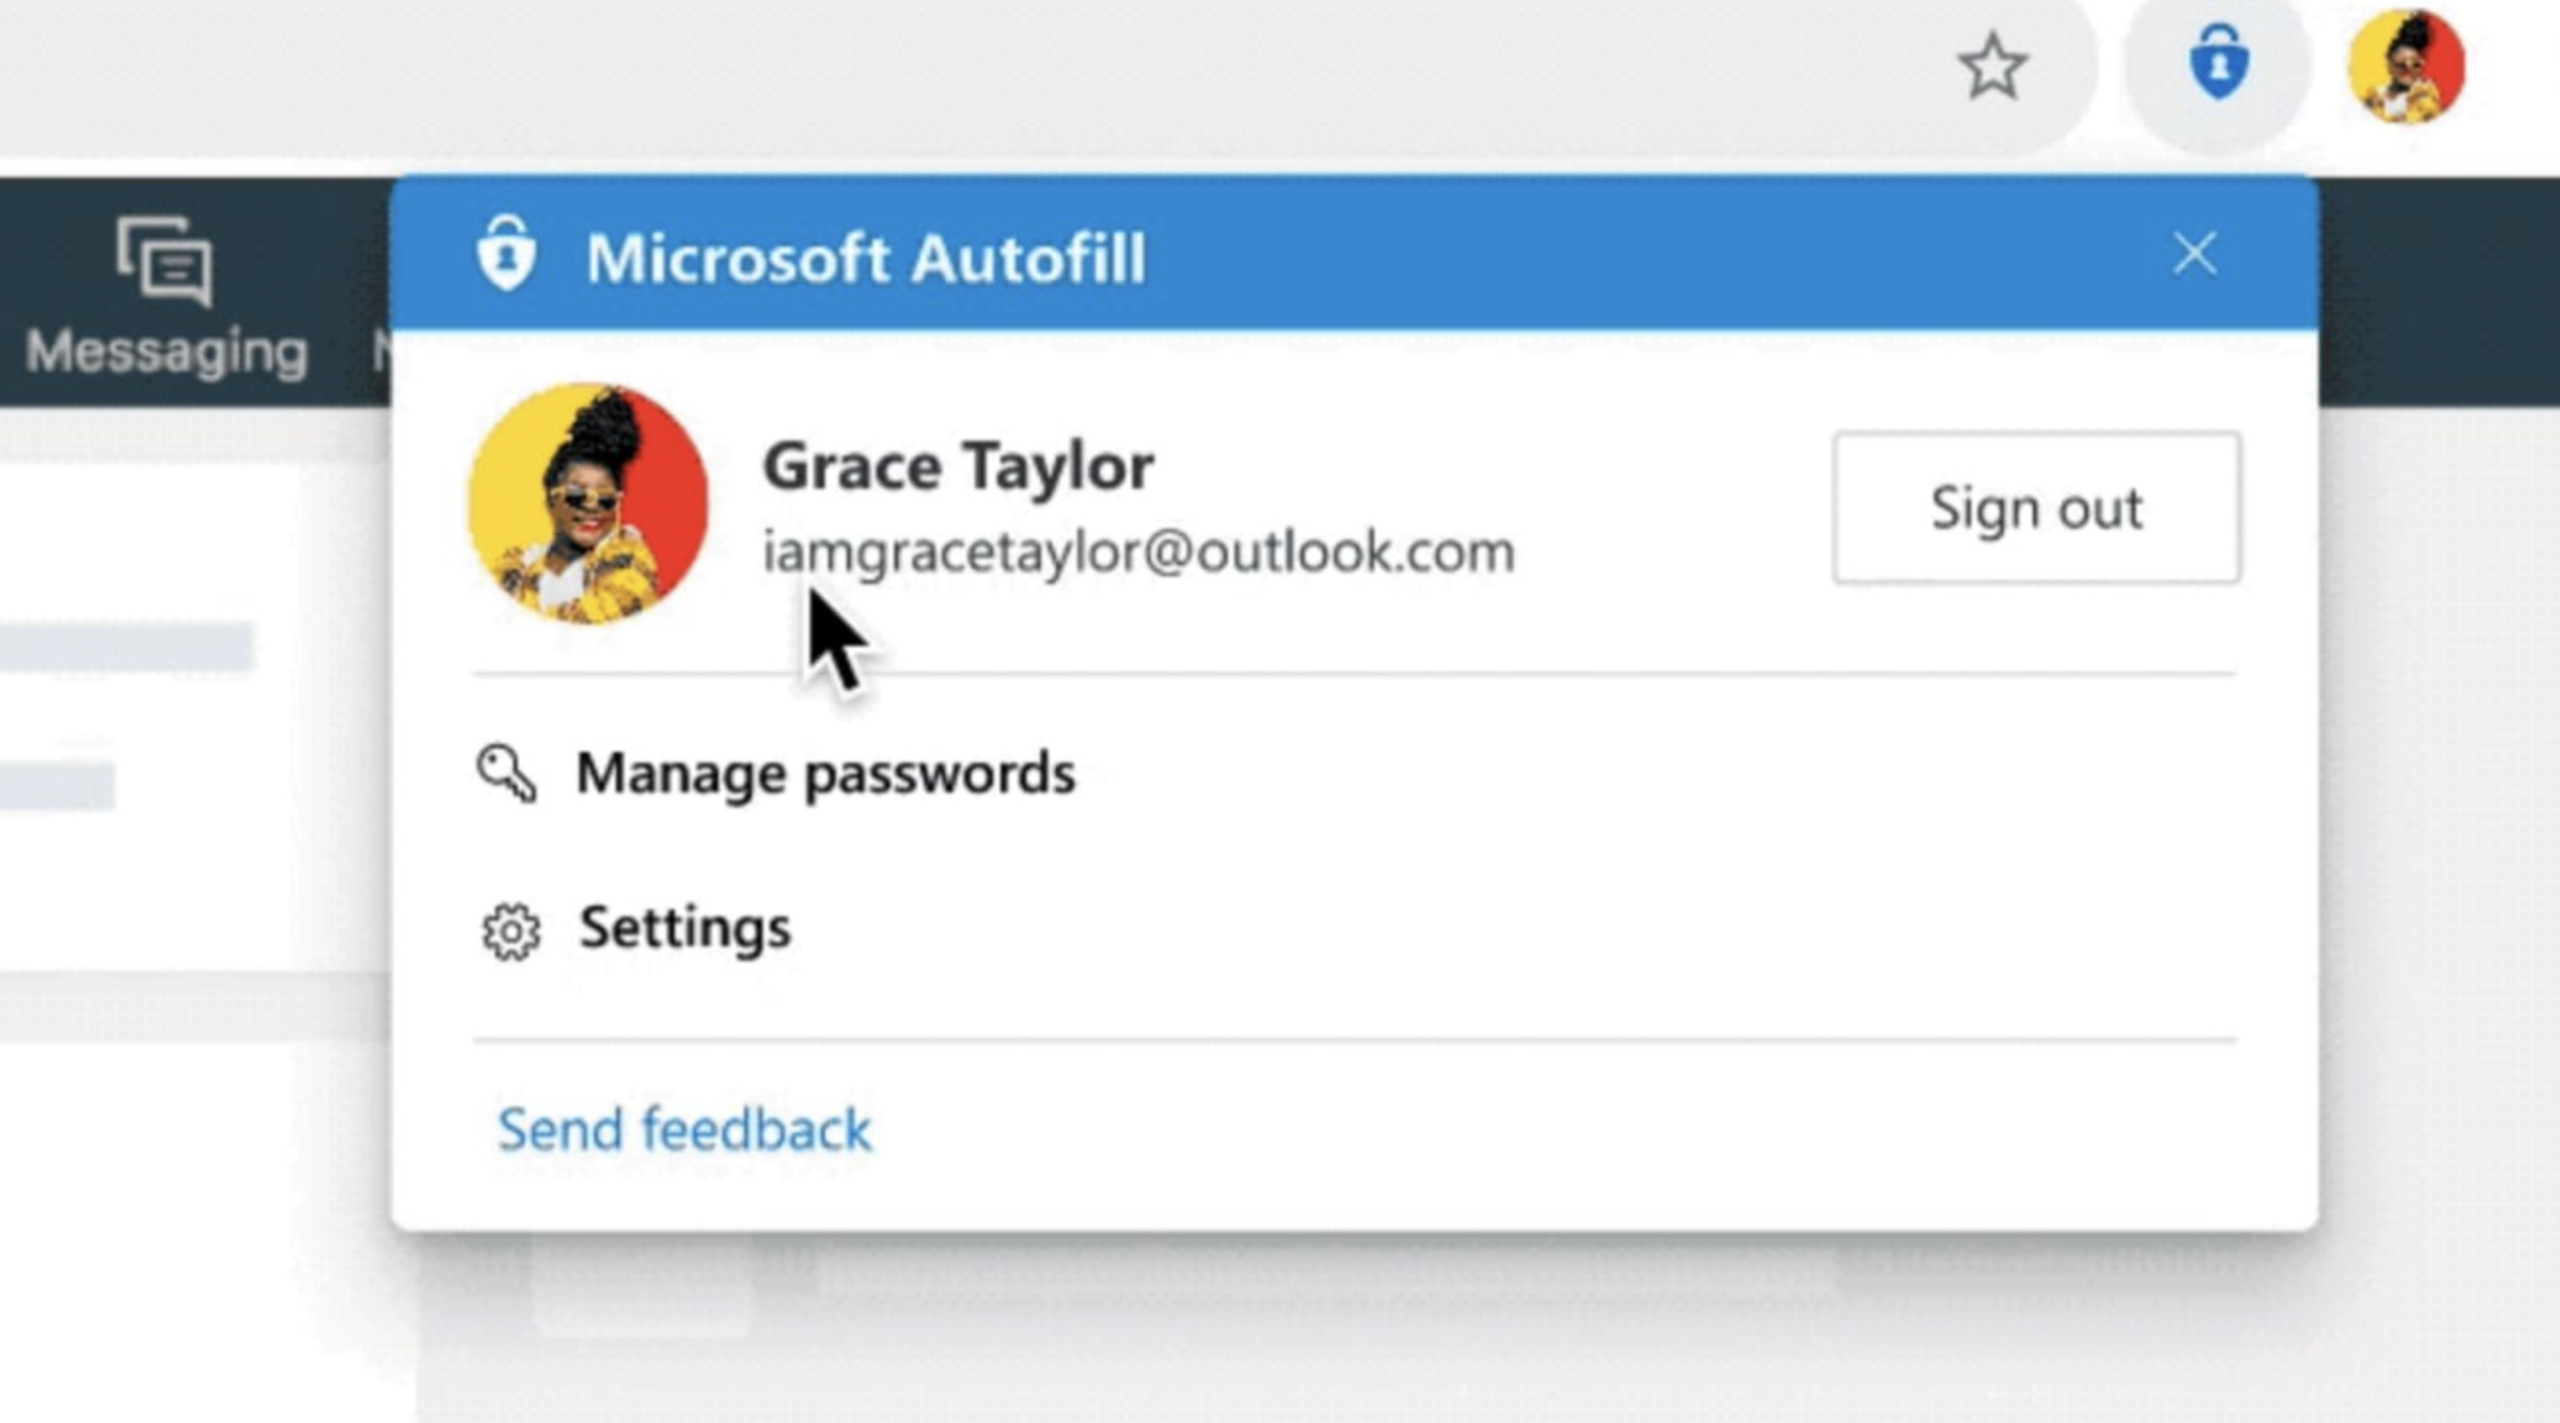 Microsoft releases Autofill for macOS and iOS